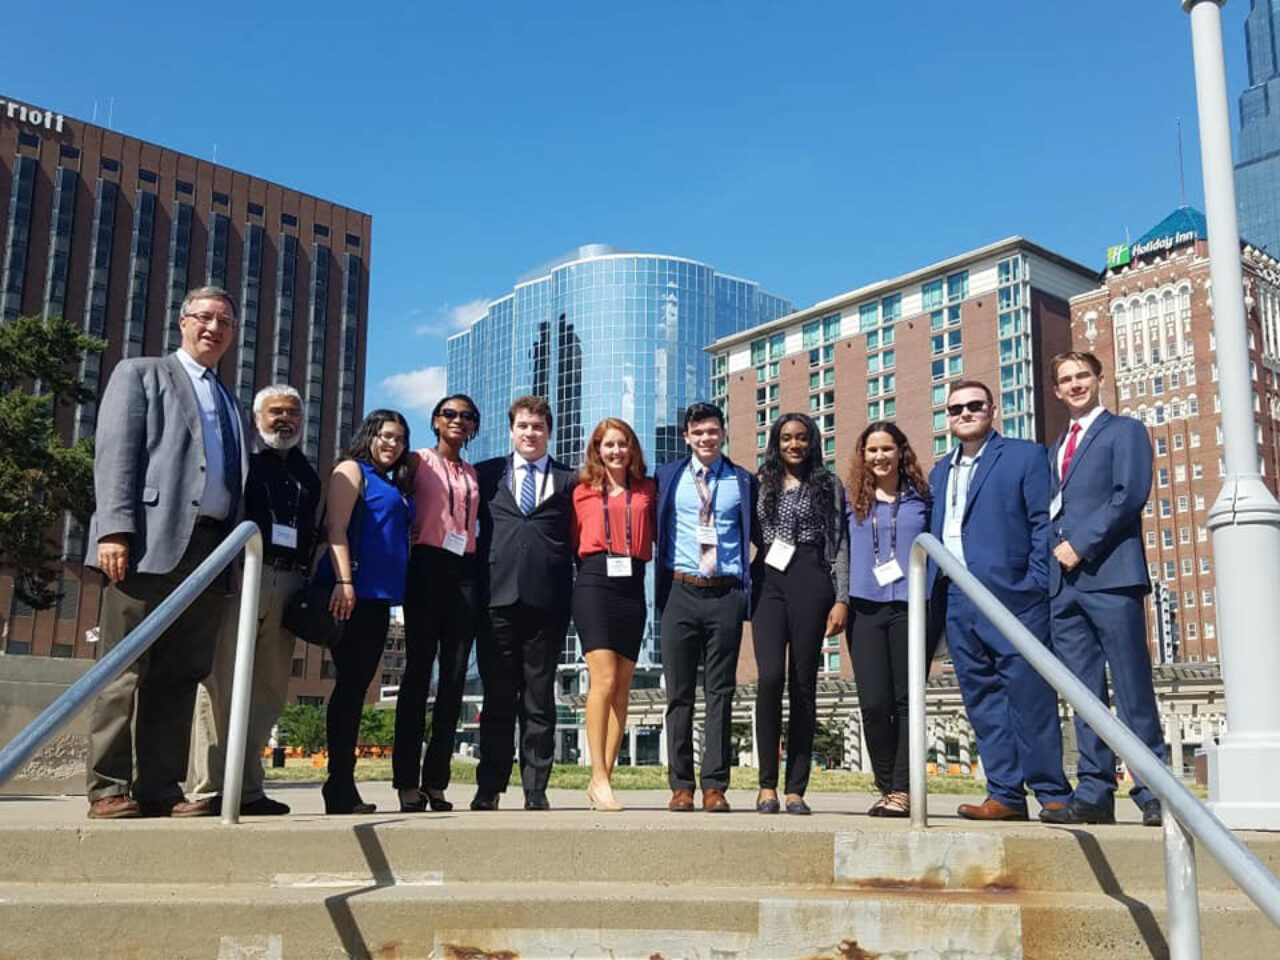 Professor Cleaves and the Enactus Club